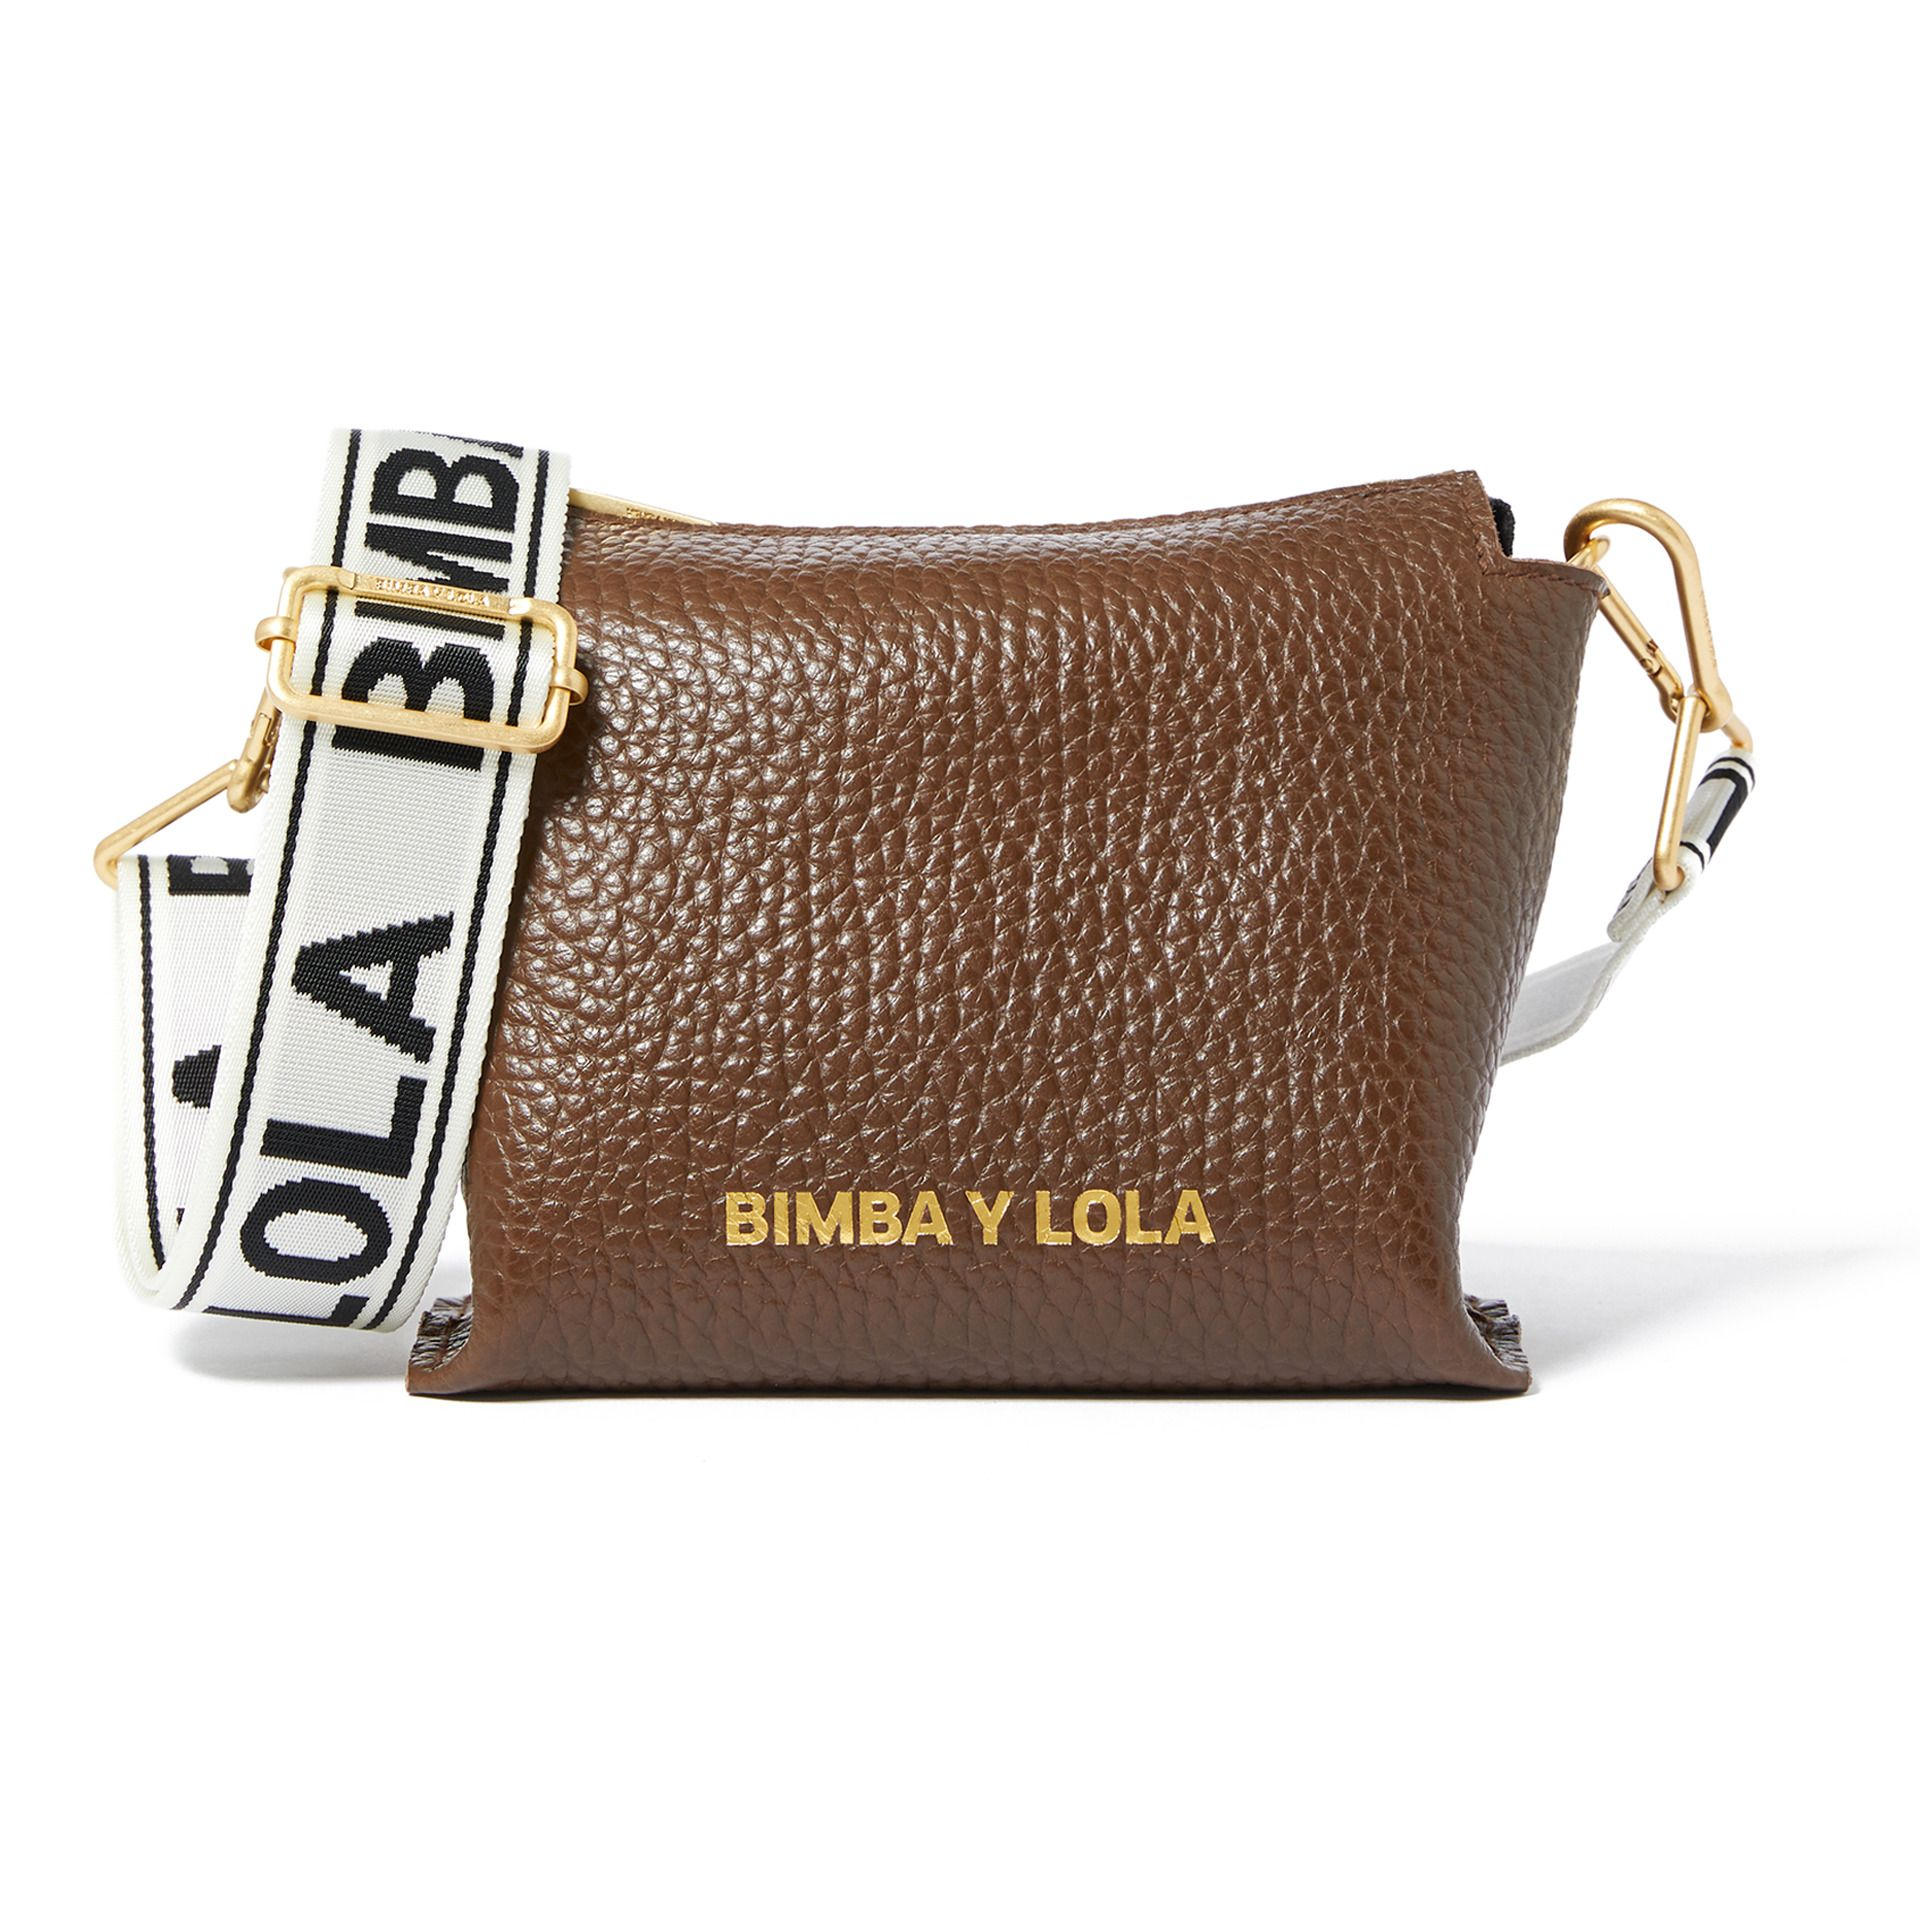 Sac Bandoulière Cuir Chocolat Bimba Y Lola Outfit Accessories Bags Accessories